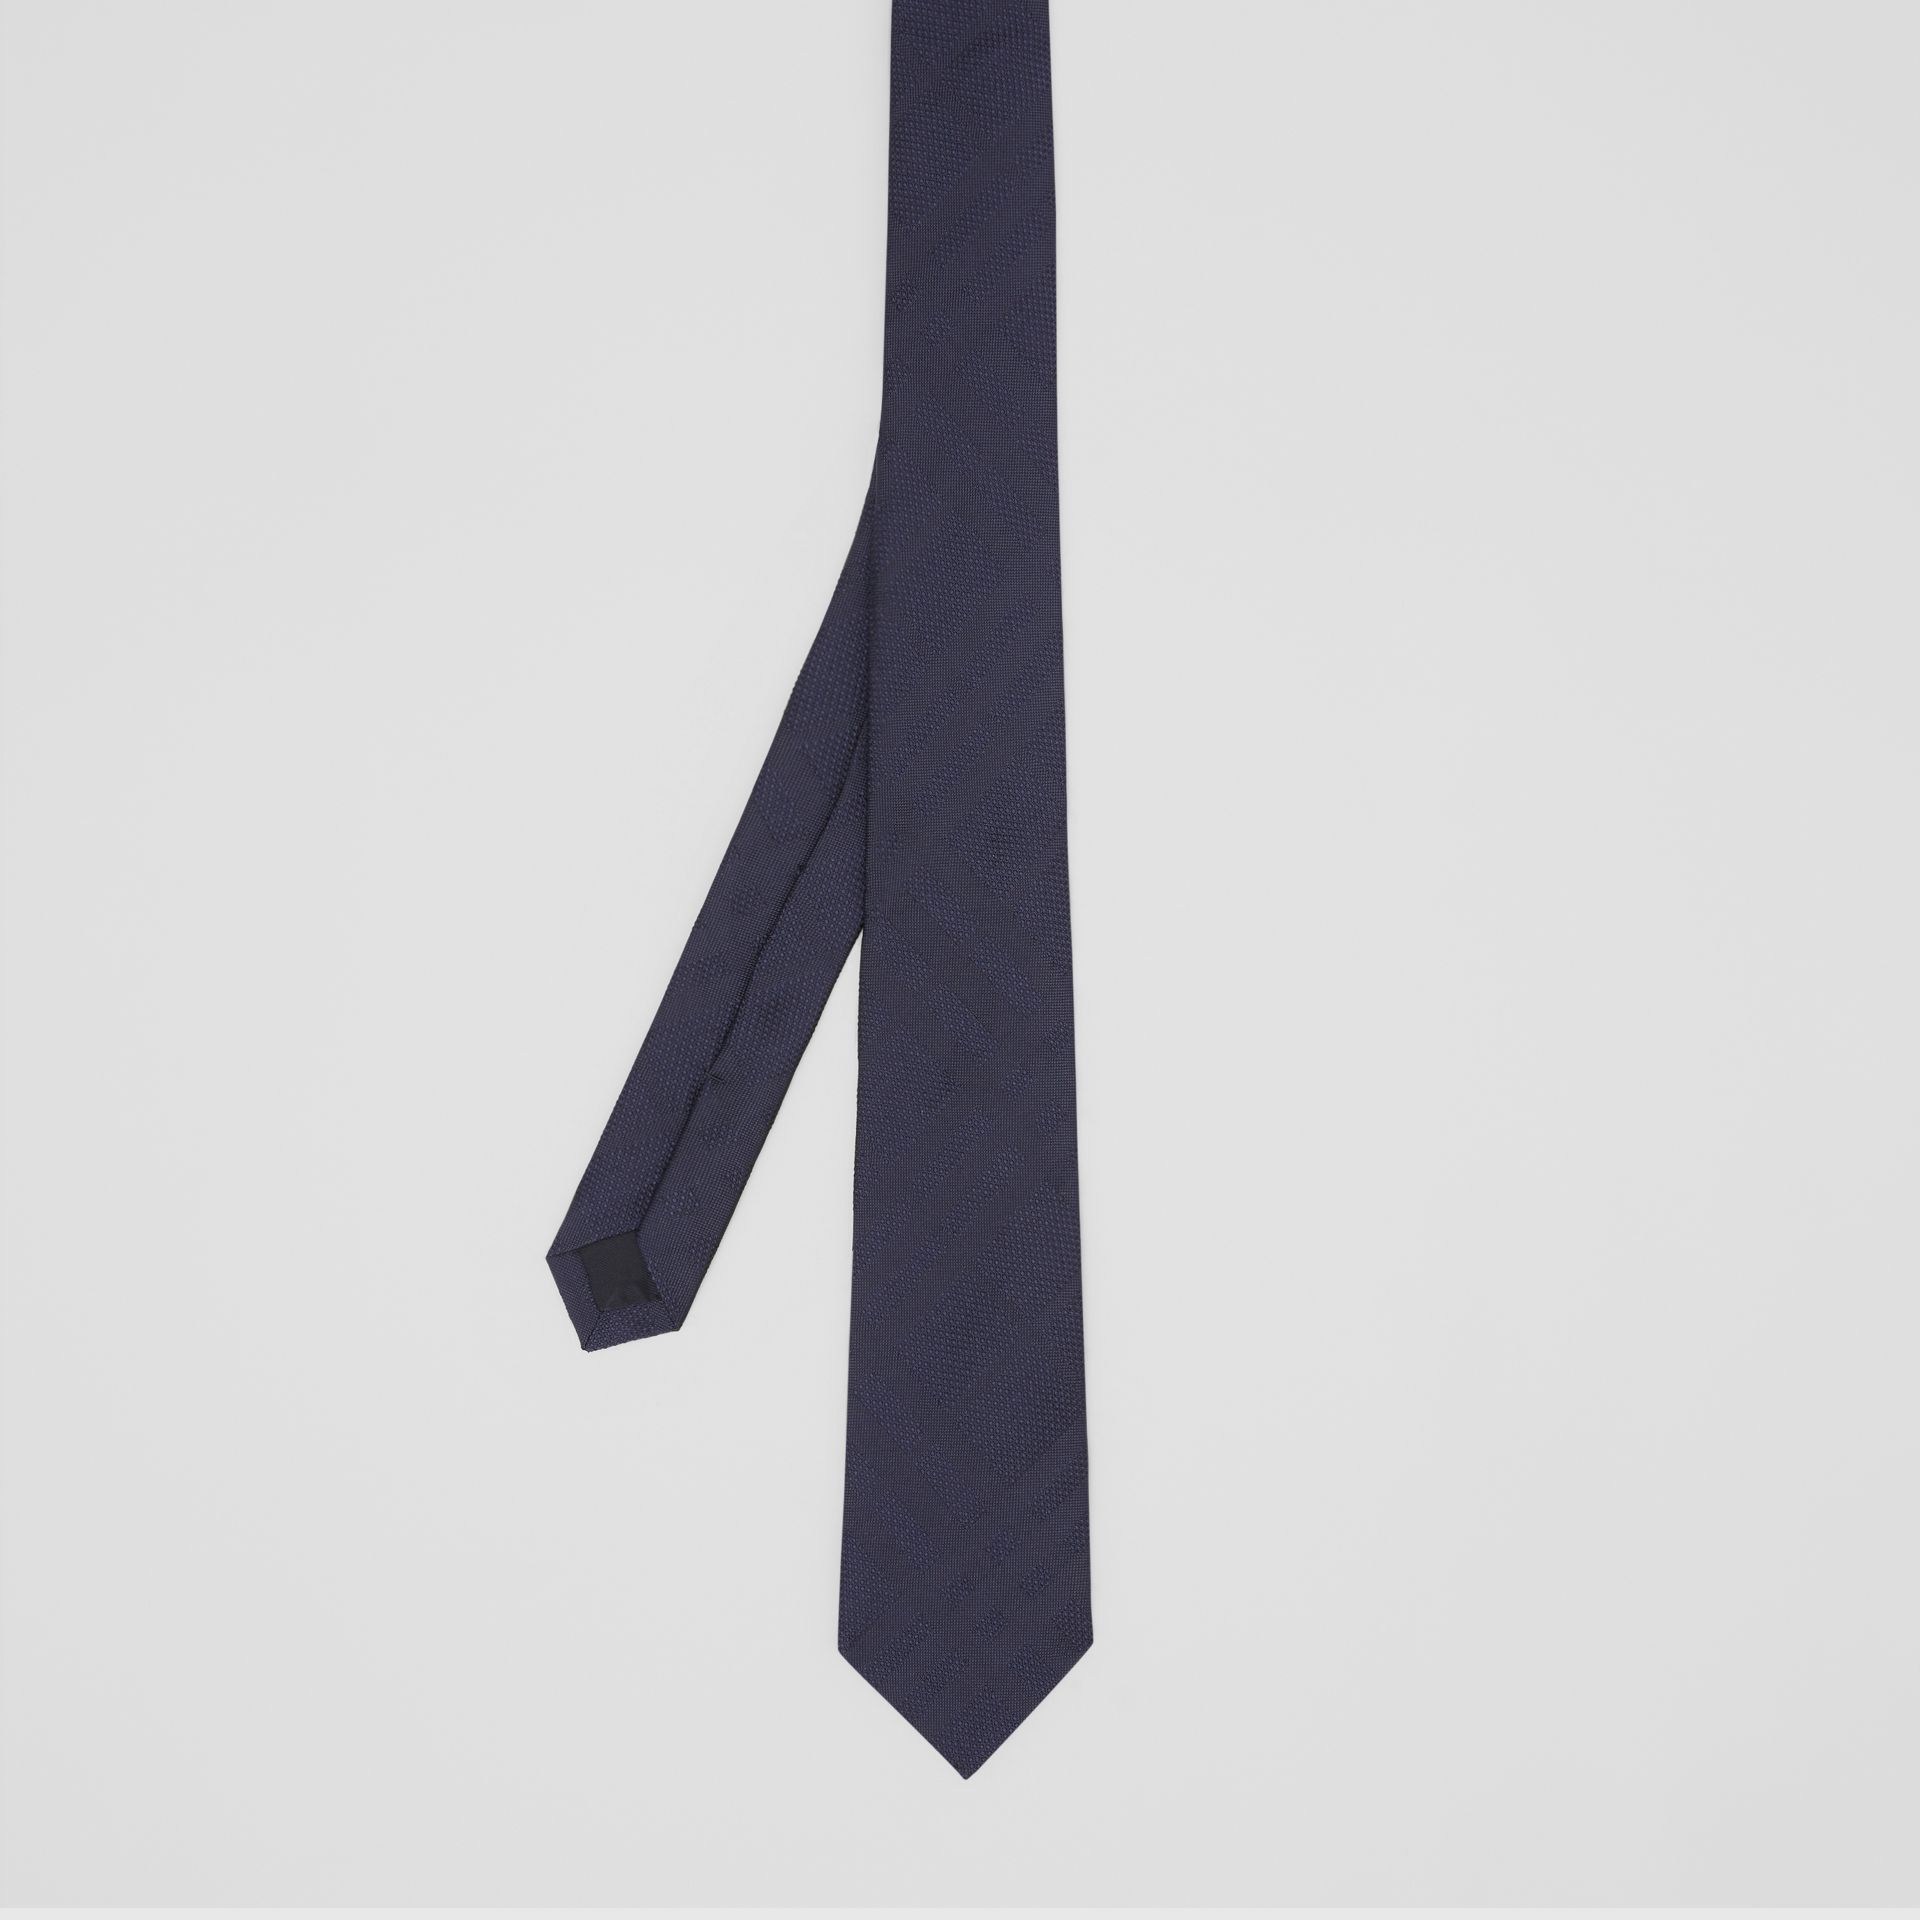 Classic Cut Check Silk Jacquard Tie in Navy - Men | Burberry United States - gallery image 4